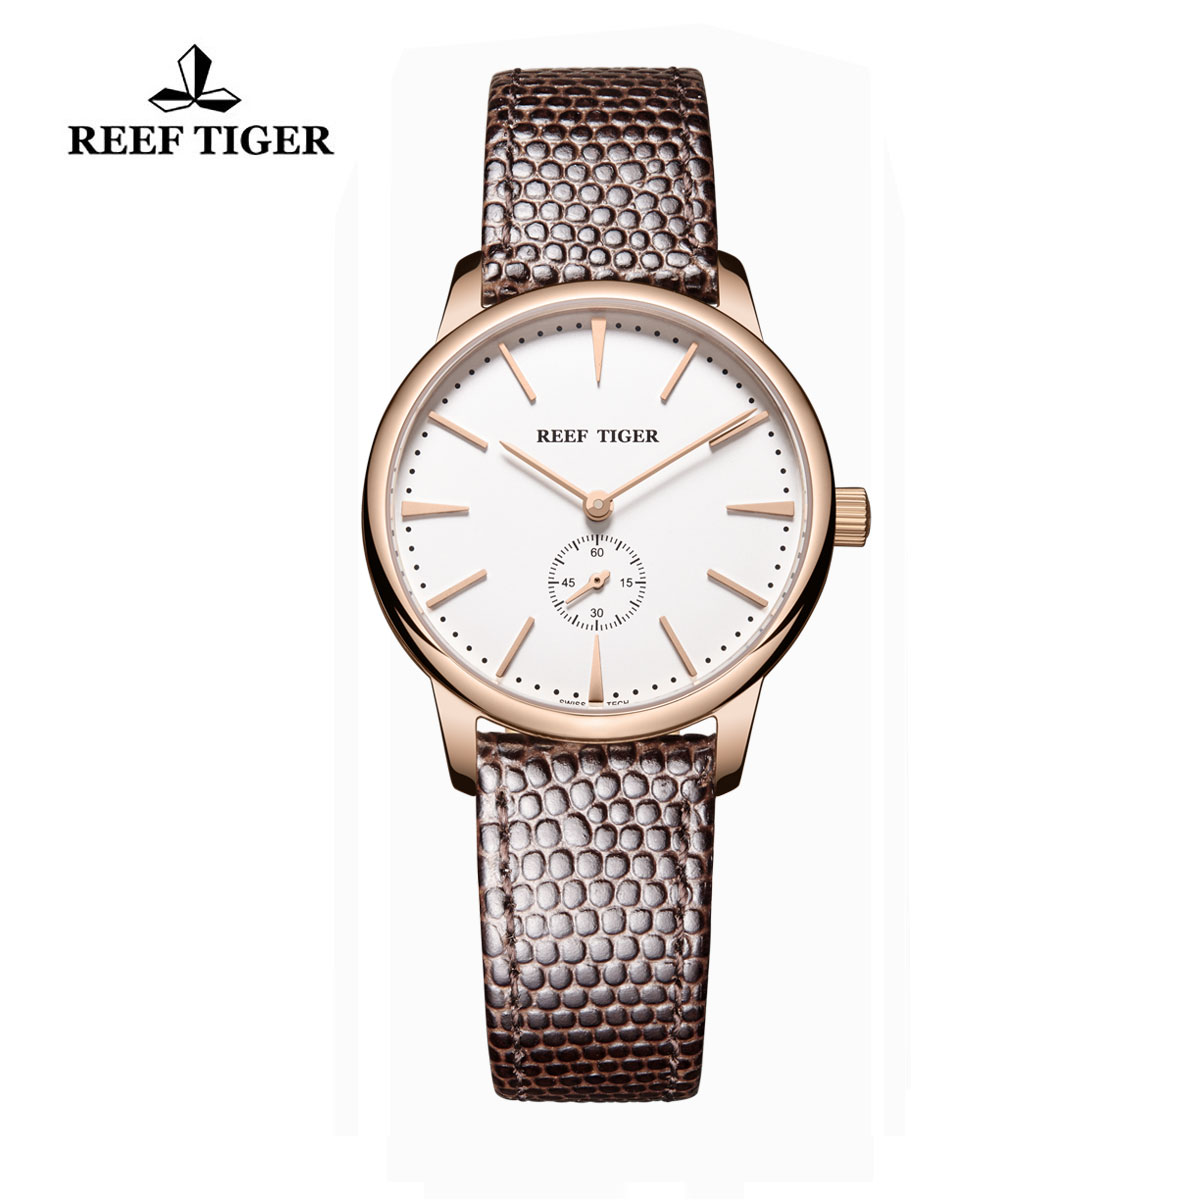 Reef Tiger Vintage Couple Watch White Dial Rose Gold Calfskin Leather RGA820-PWB